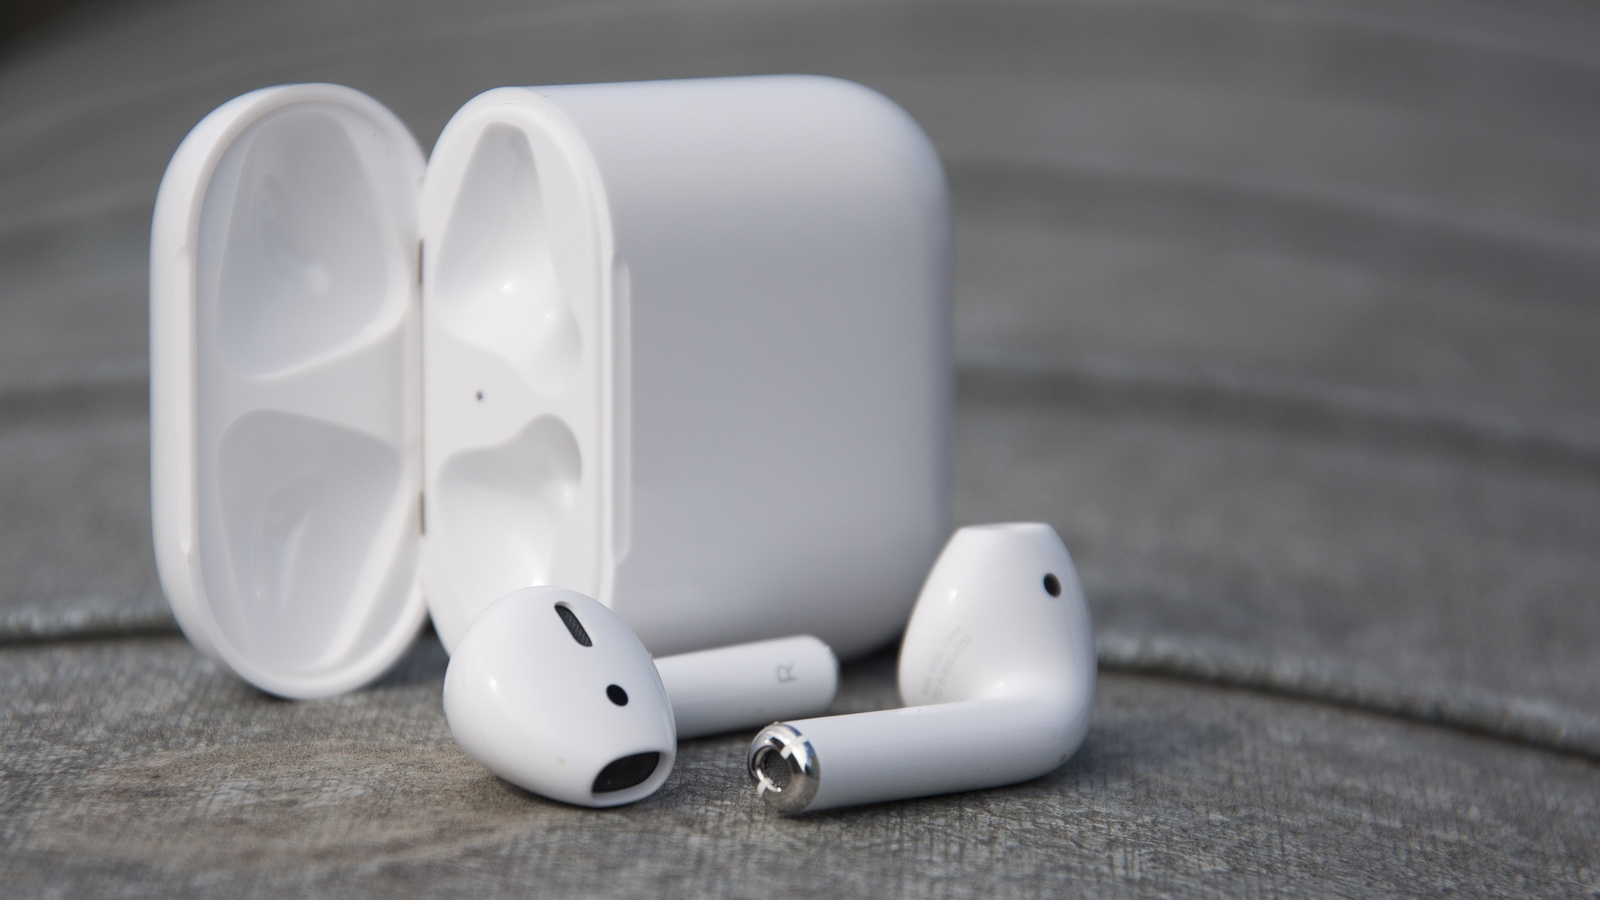 #Video: AirPods have been tested for durability